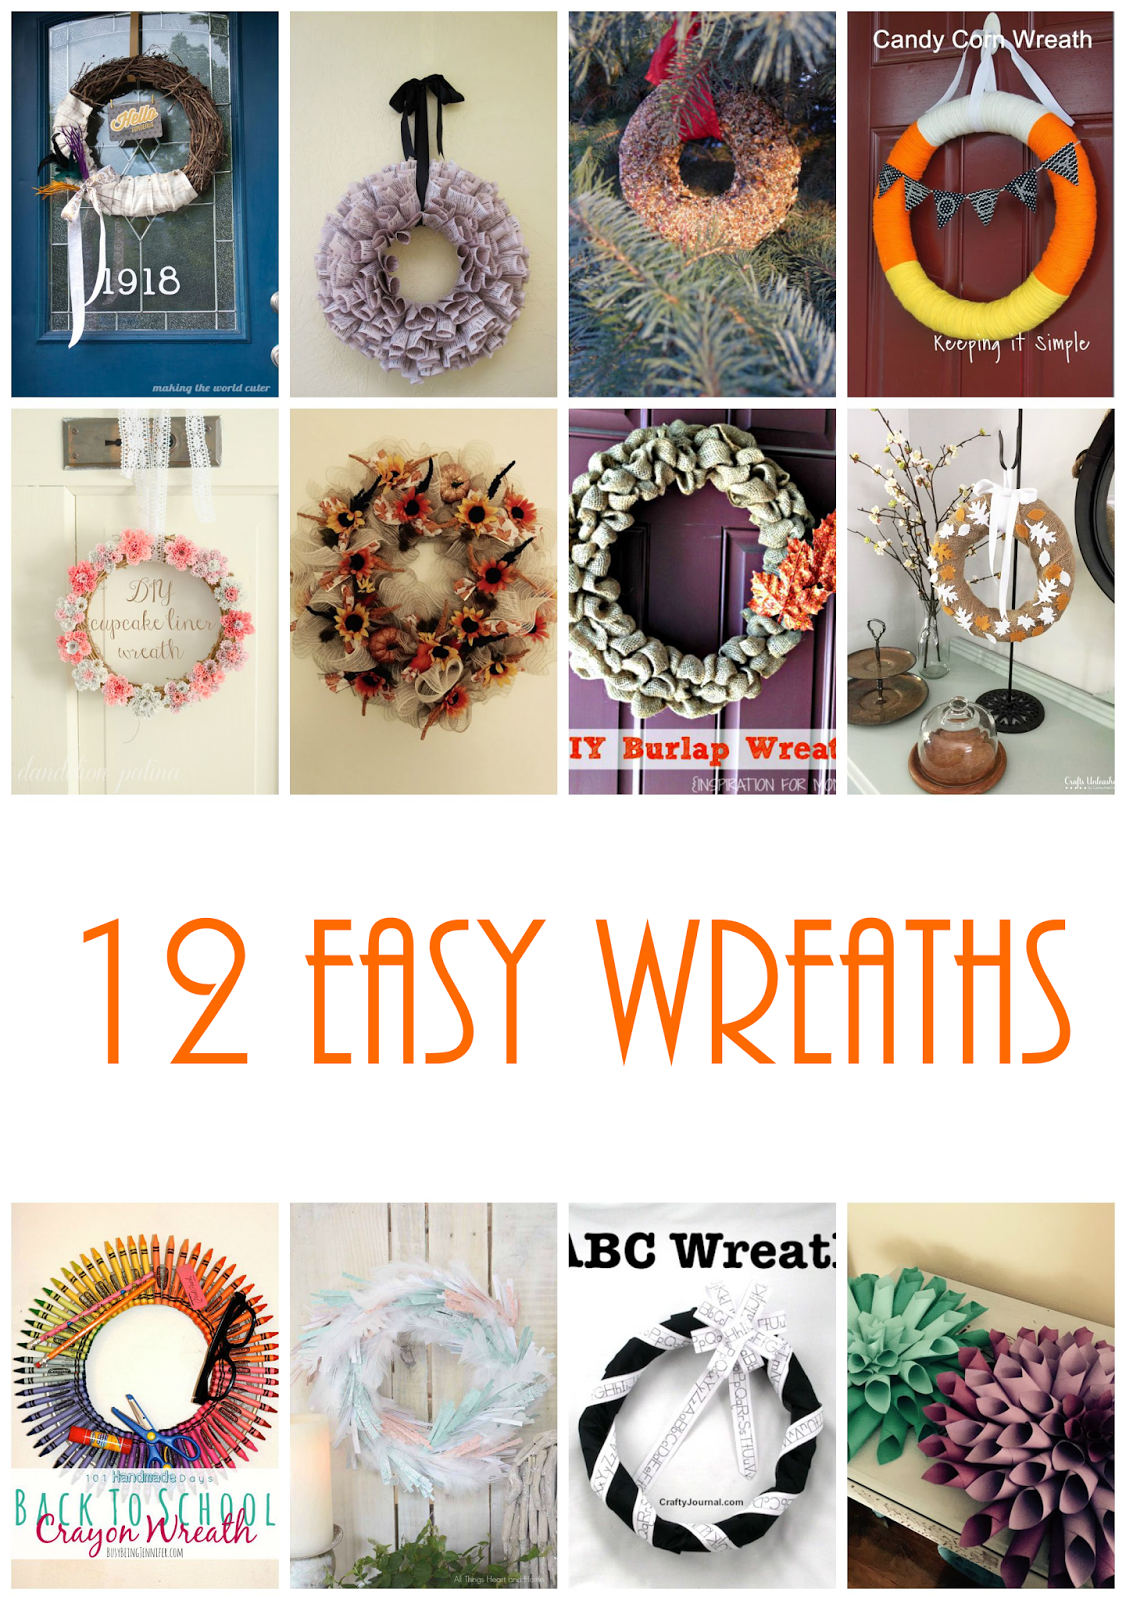 12 easy wreath to DIY for your home and front door